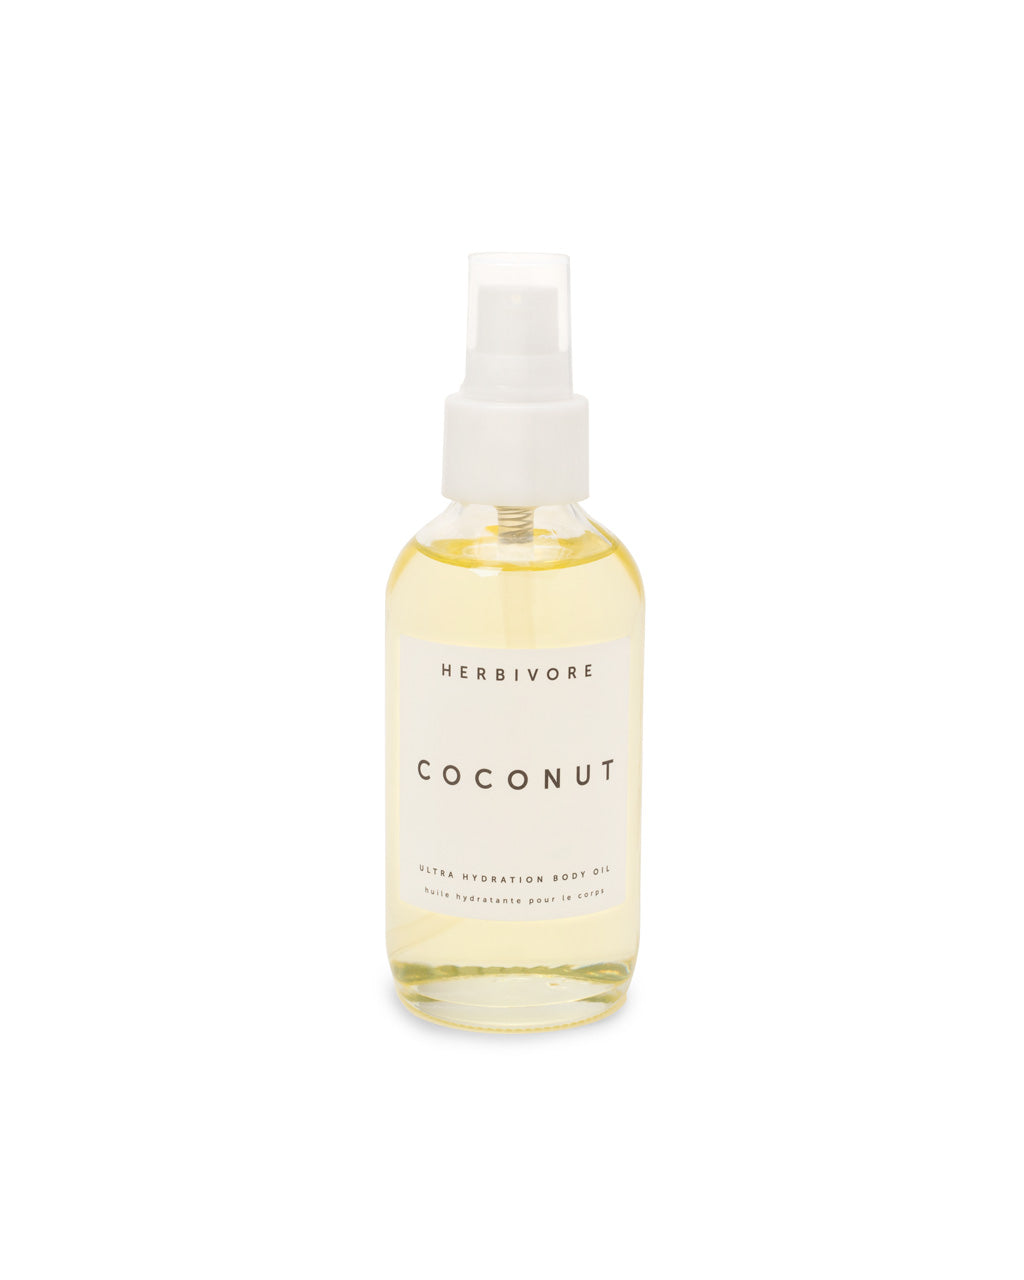 This Body Oil by Herbivore comes in a clear glass spray bottle.